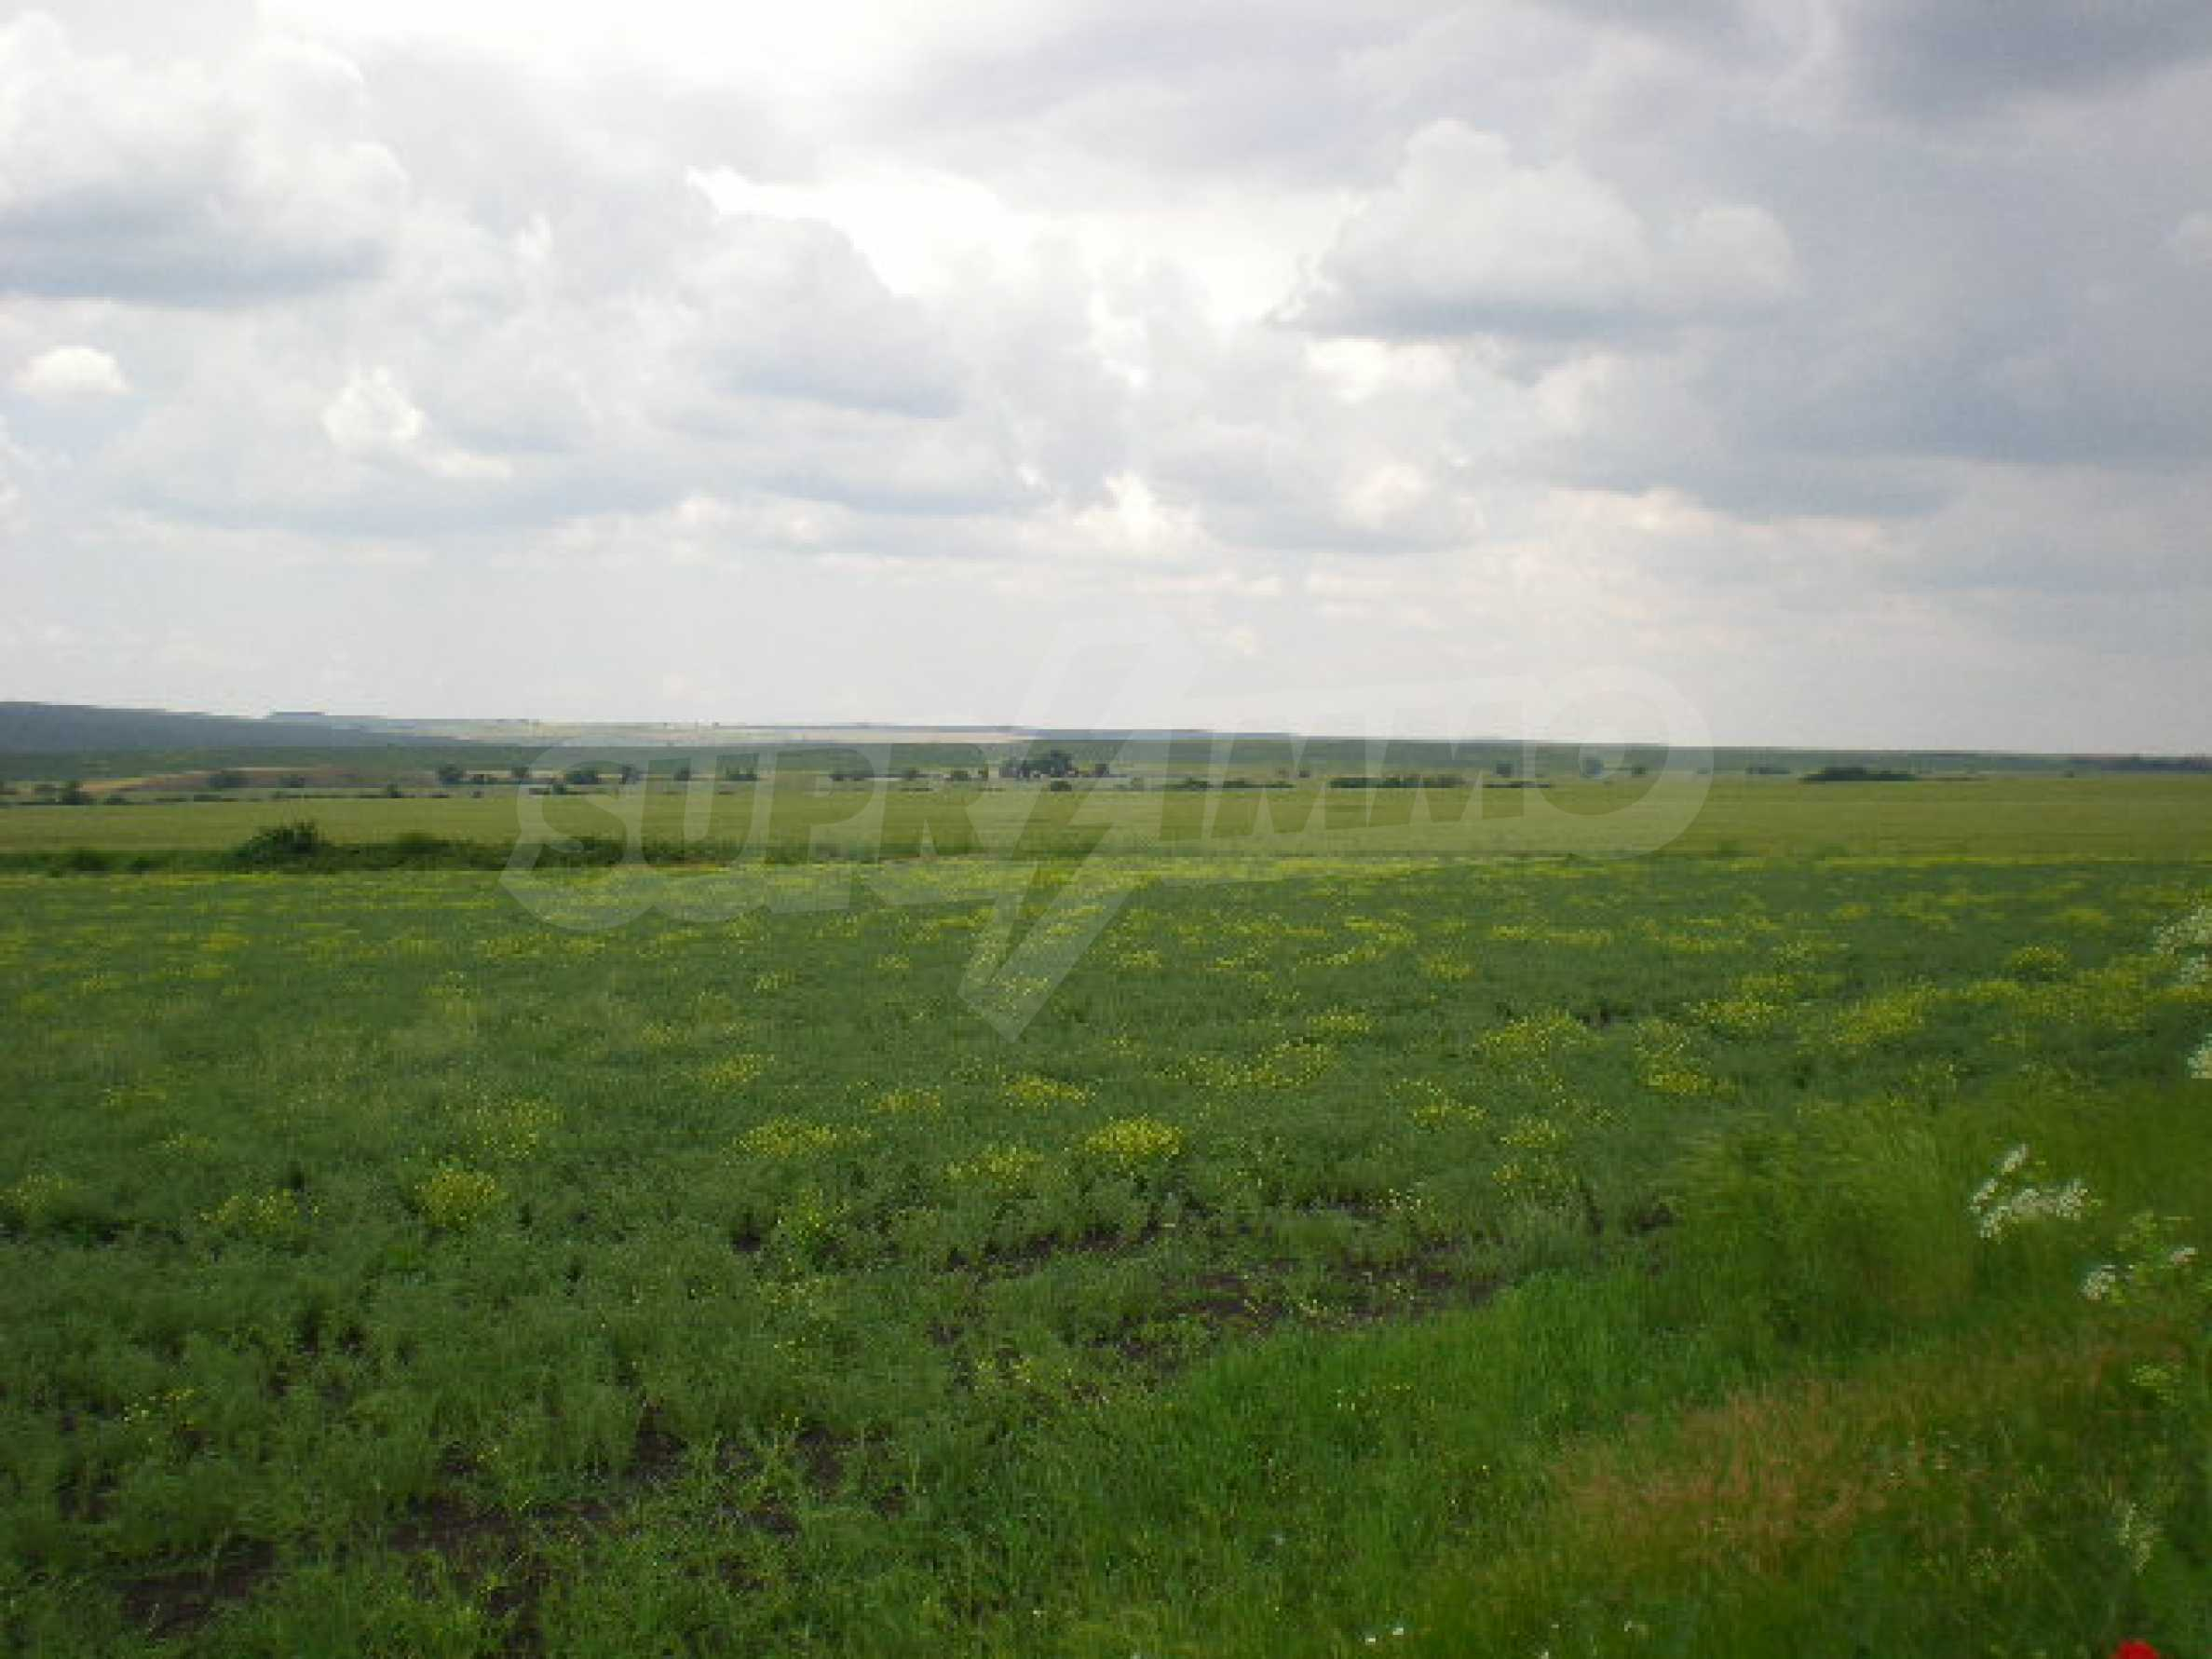 Huge plot of agricultural land near the motorway. 3